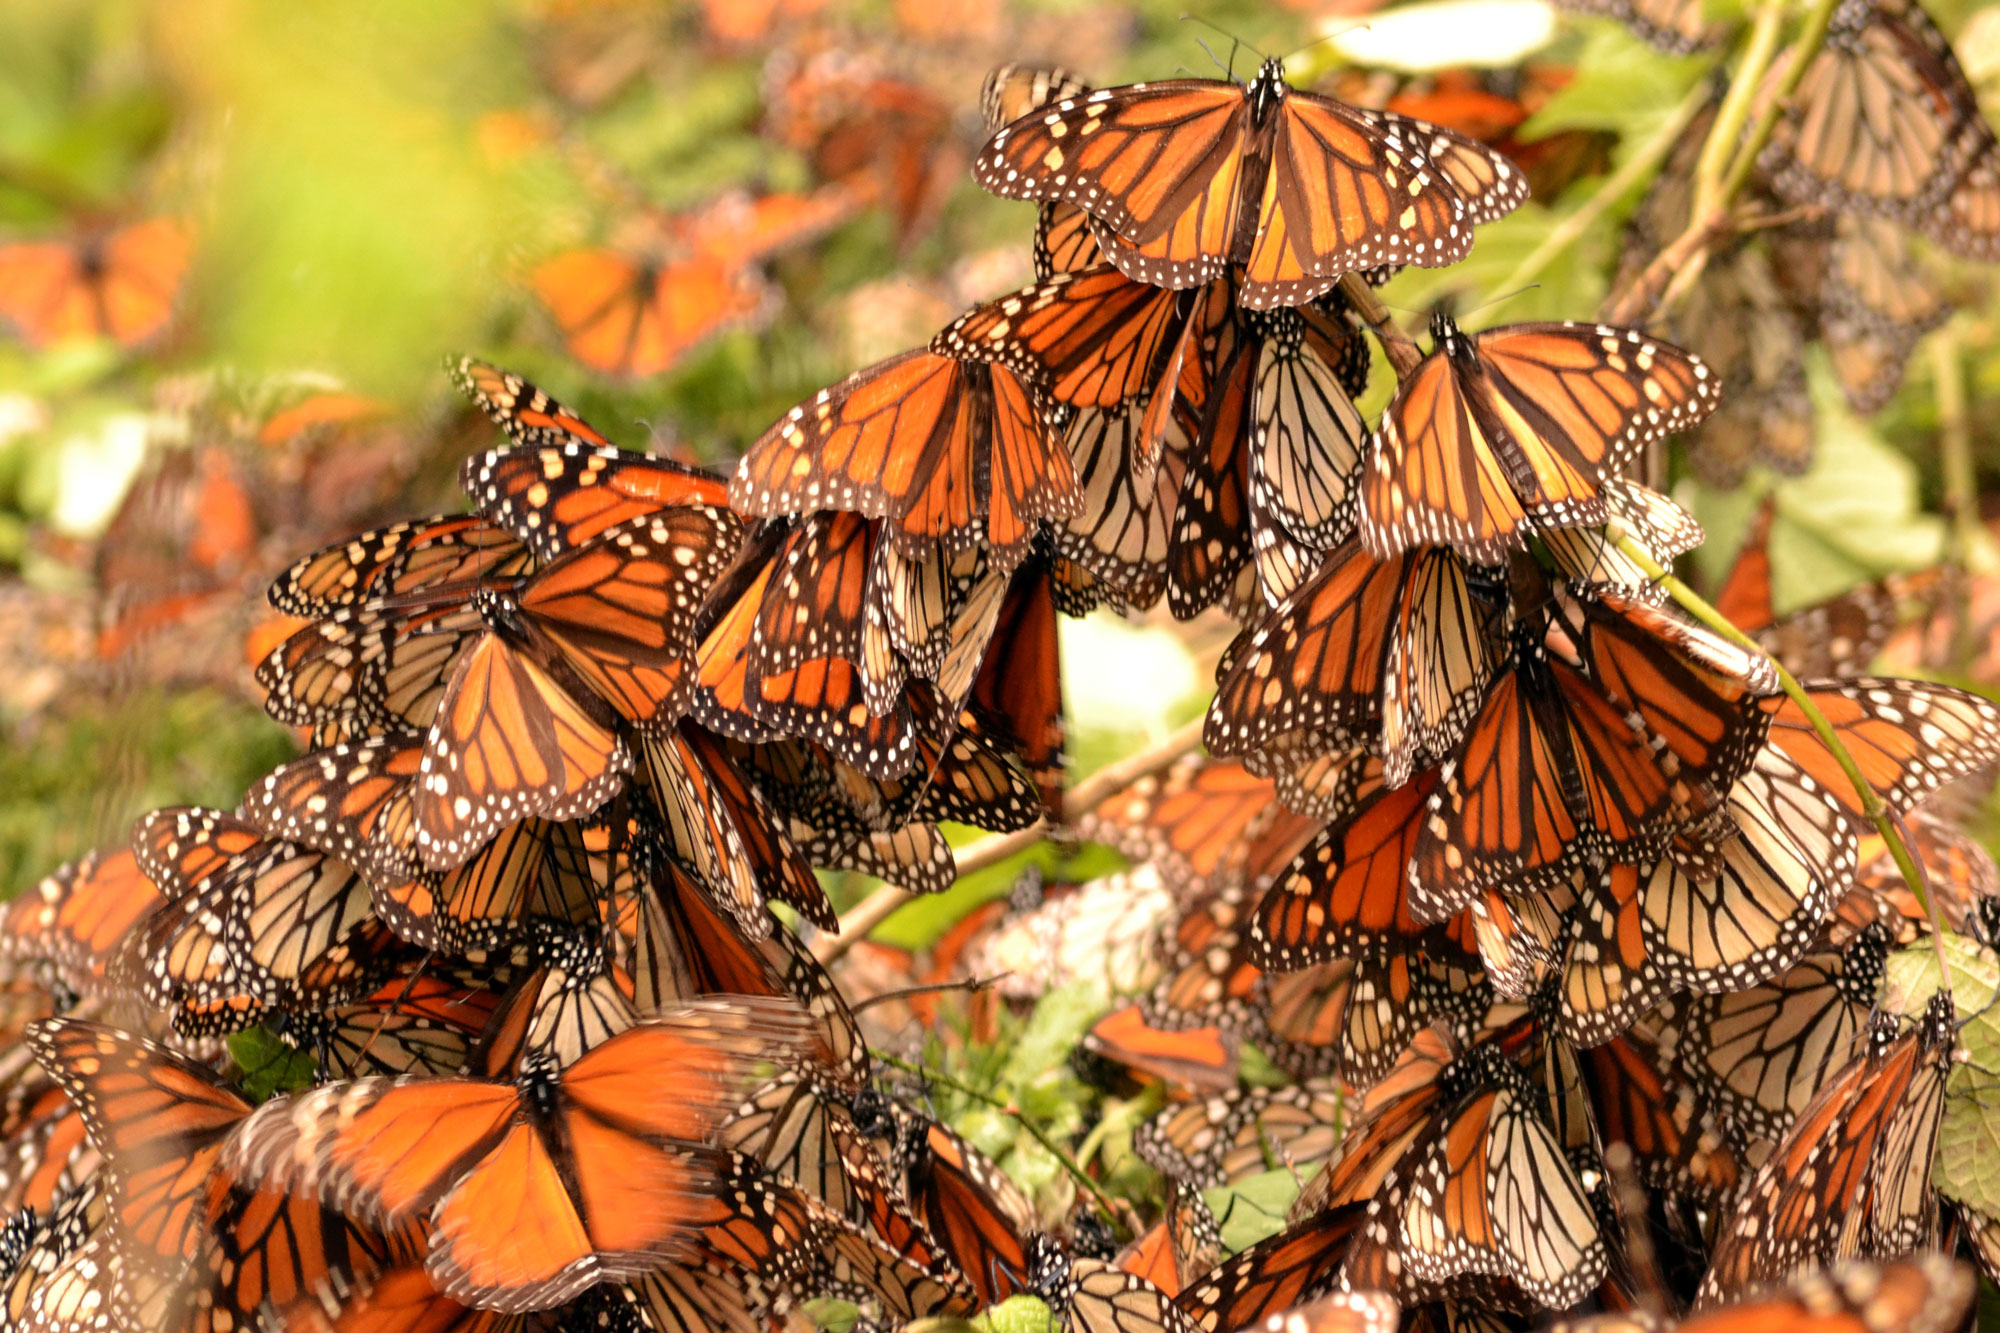 Dozens of orange and black monarch butterflies perch on tree branches, practically perching on top of one another. Some are blurred as they flap their wings.